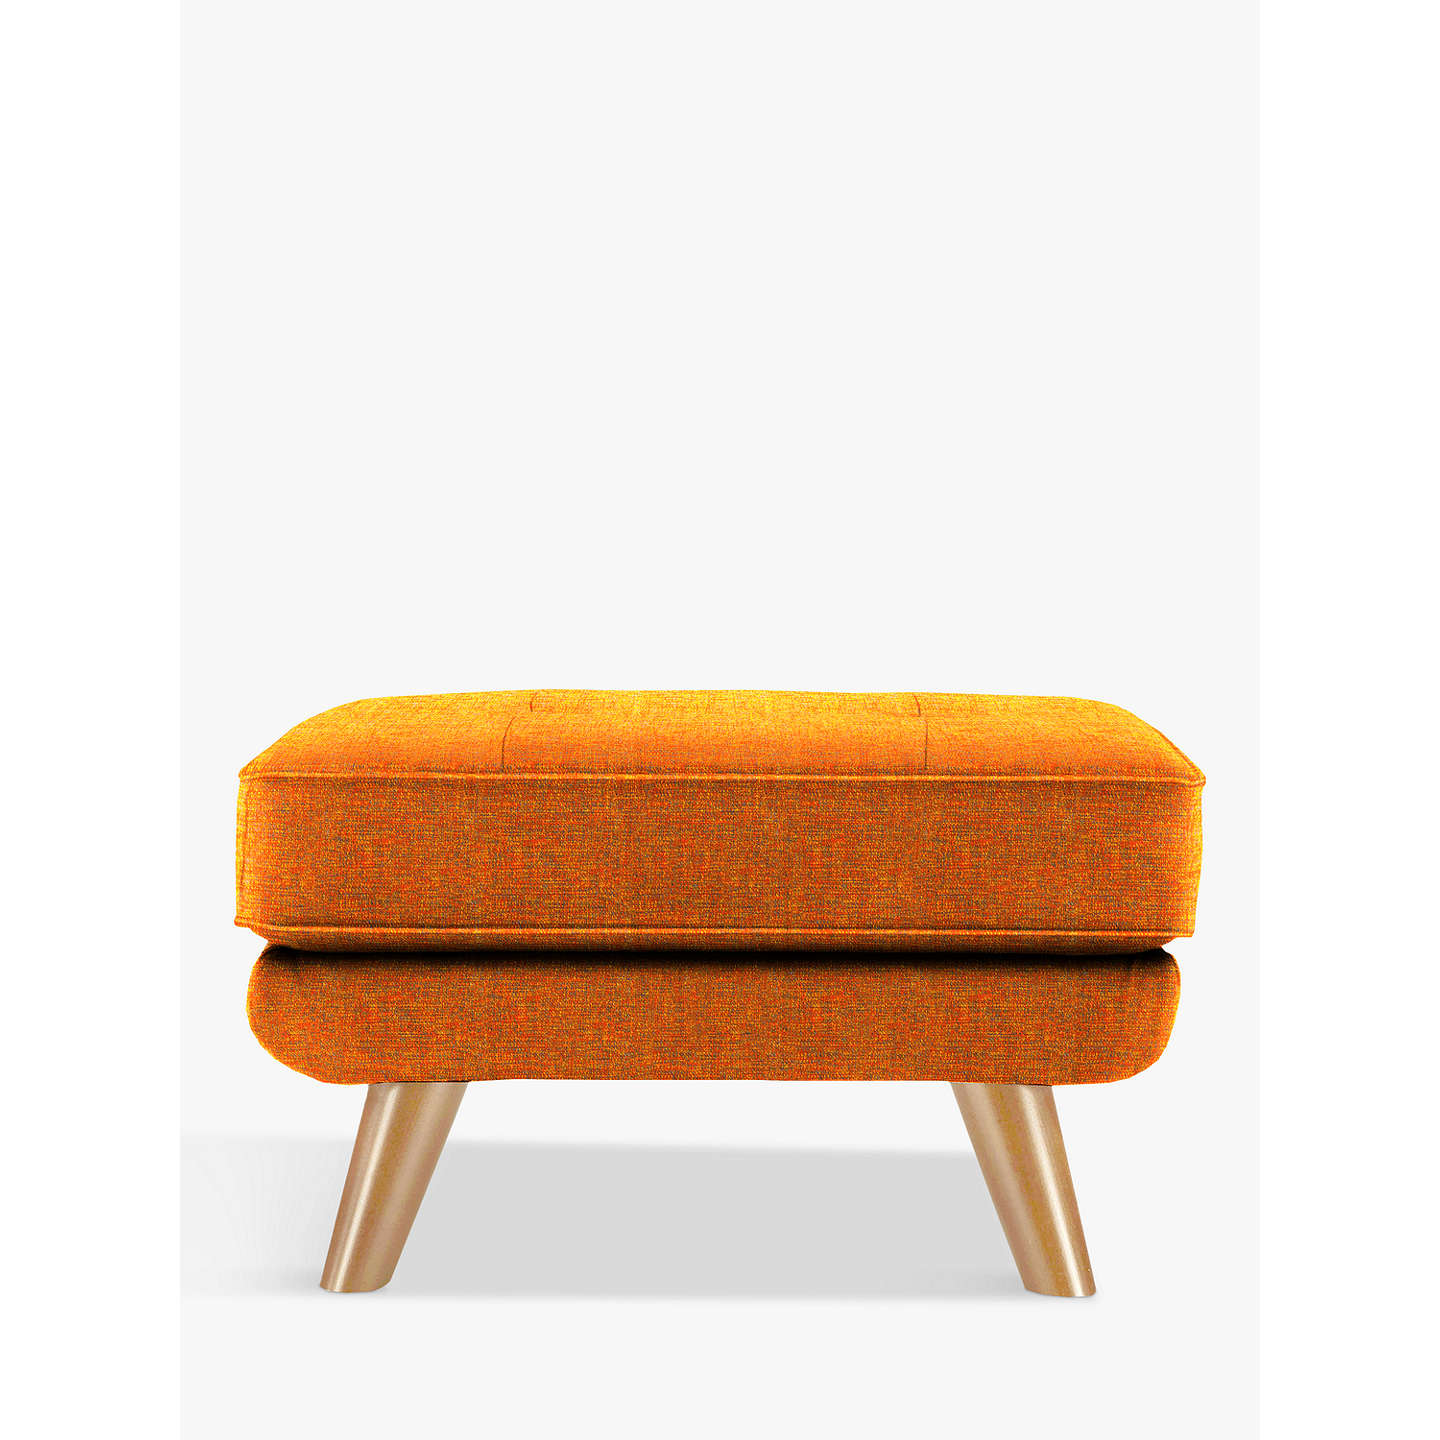 BuyG Plan Vintage The Fifty Three Footstool, Marl Flame Online at johnlewis.com